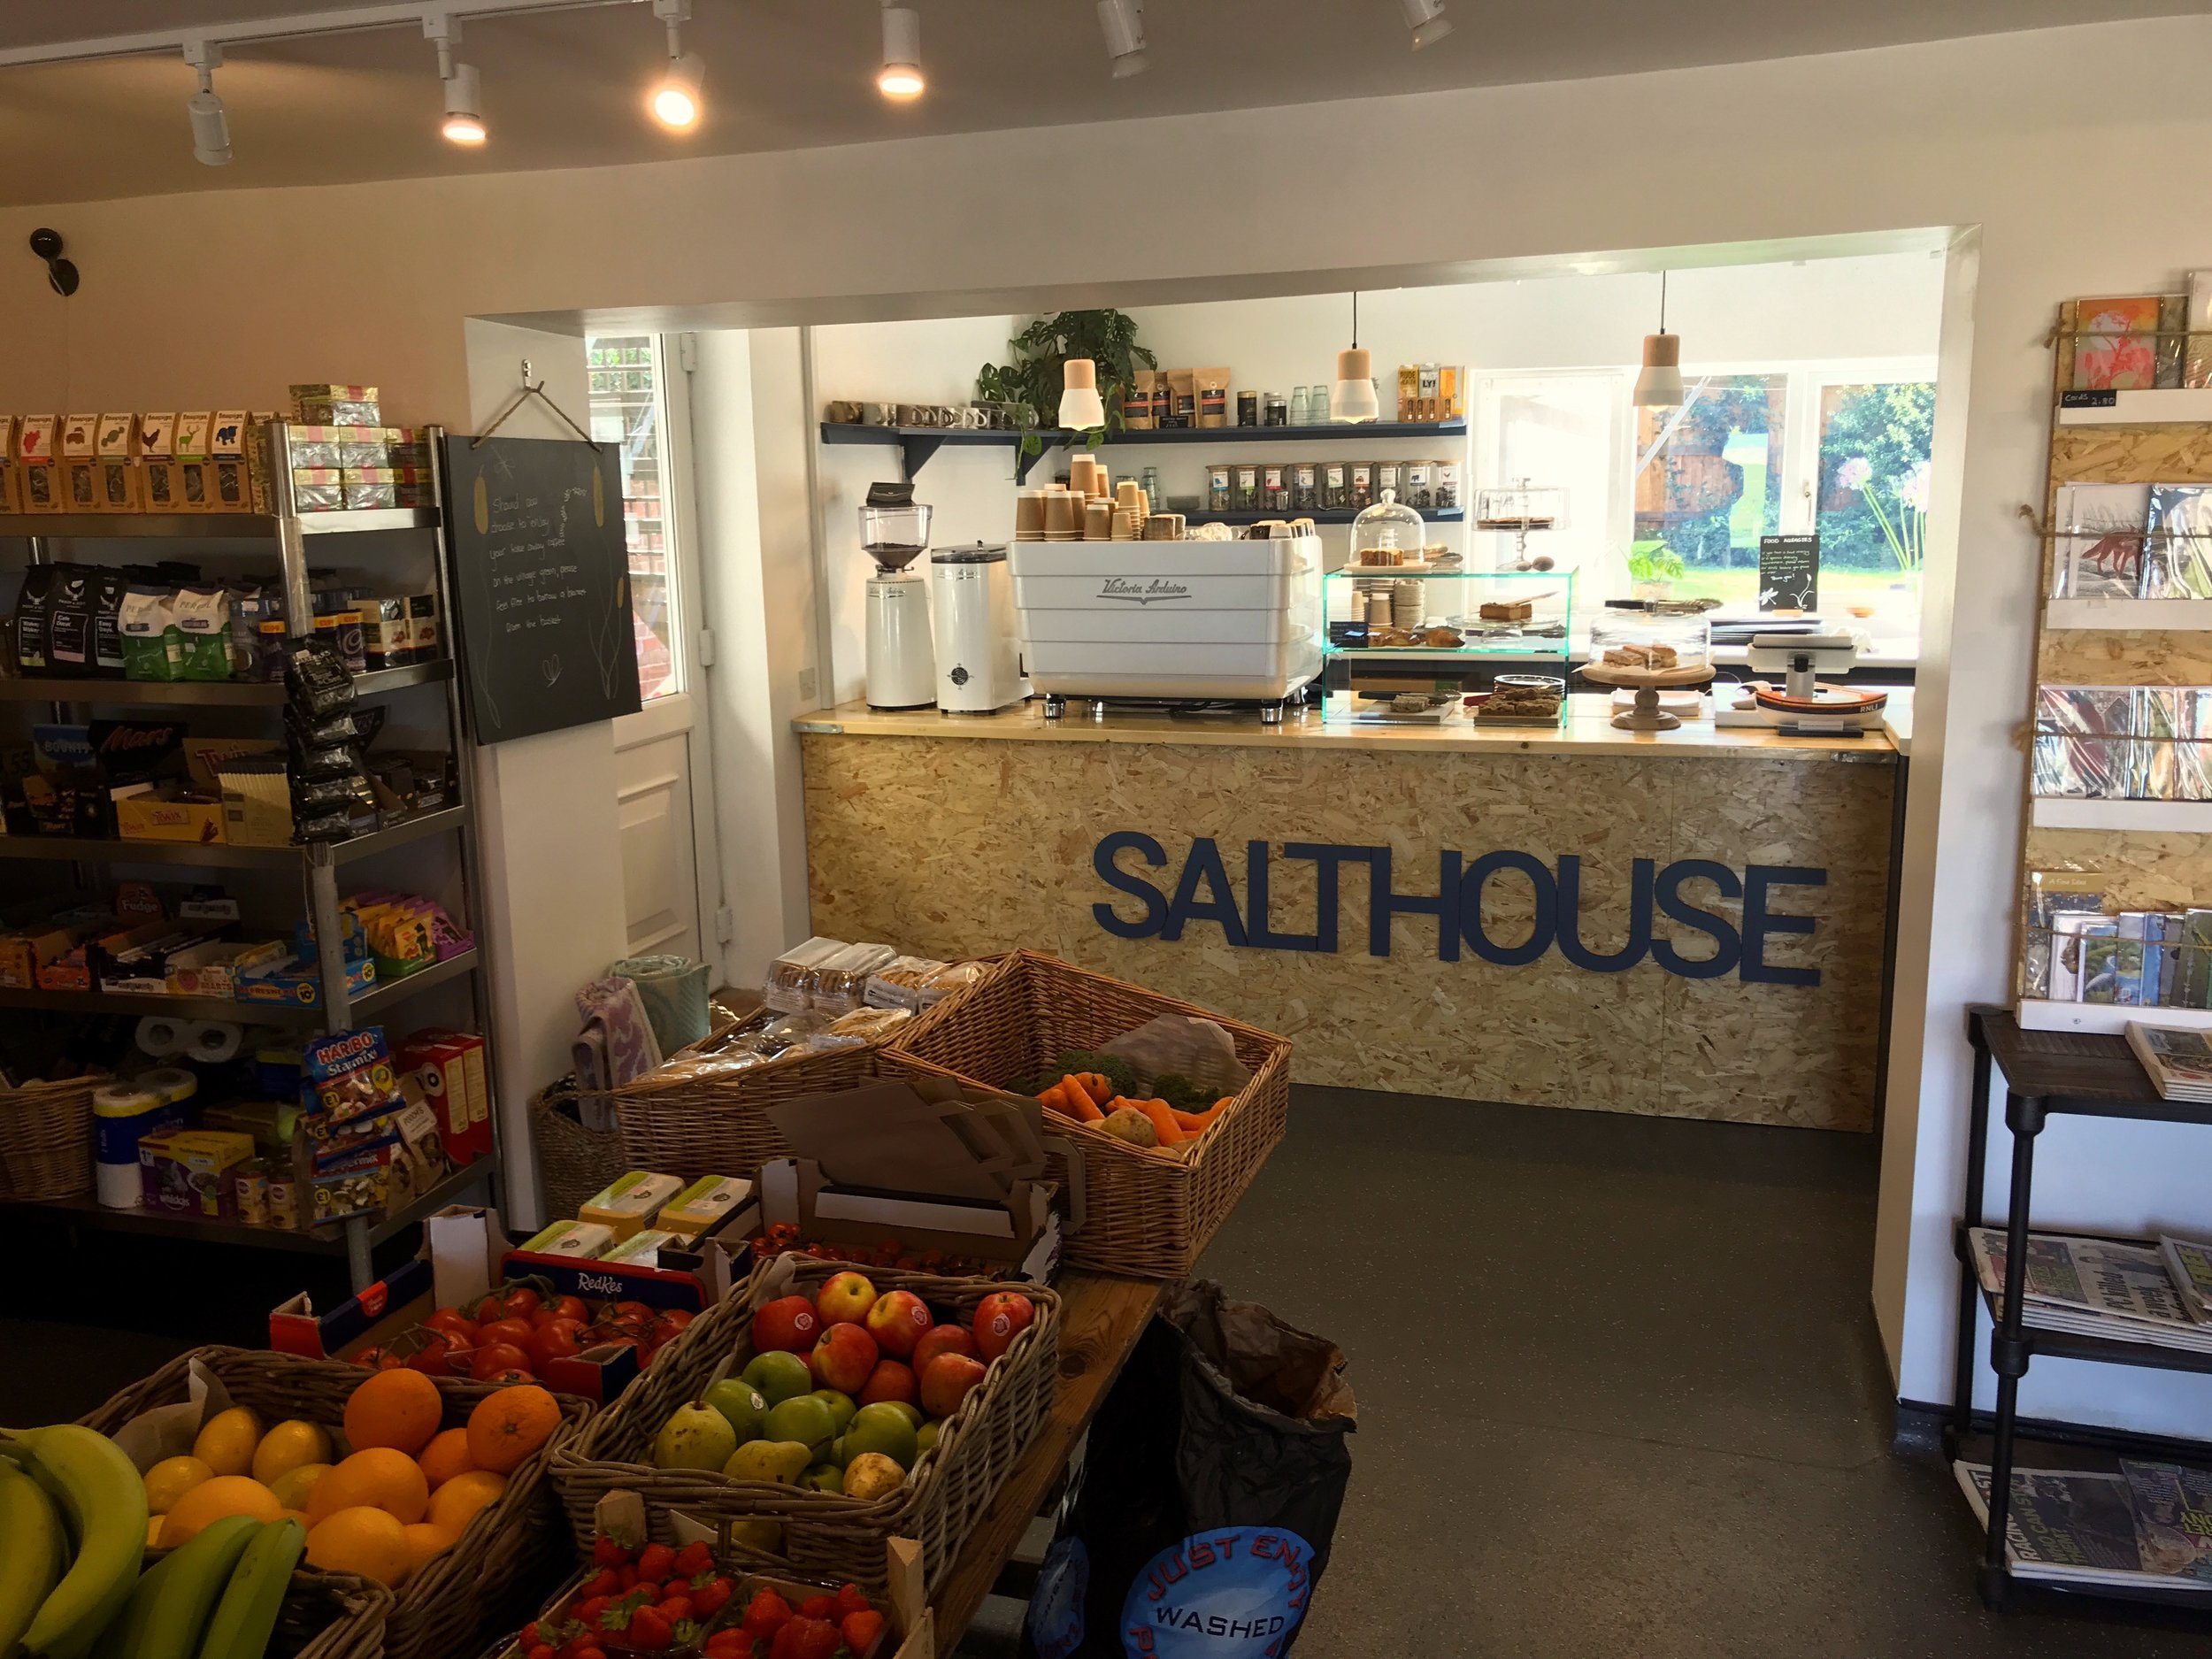 Fresh fruit and vegetables and store counter.